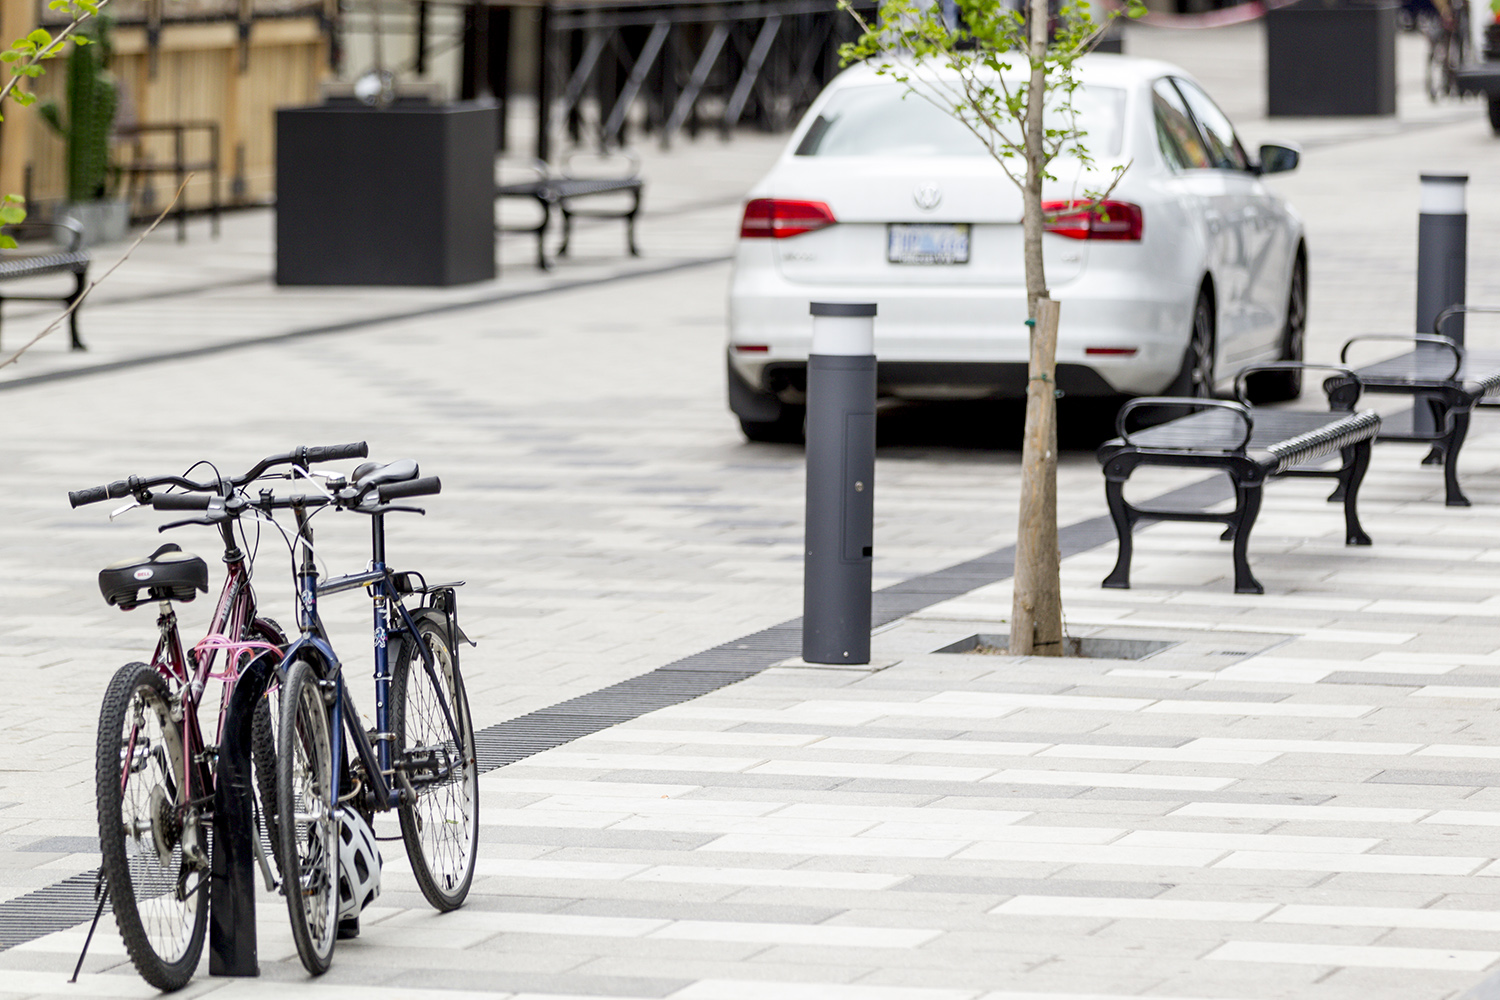 Aligning trees, benches, and lamp posts limits the obstructions to pedestrians and ensures a large path of travel. This design also makes the street easier to navigate for those with limited mobility or visual impairments.